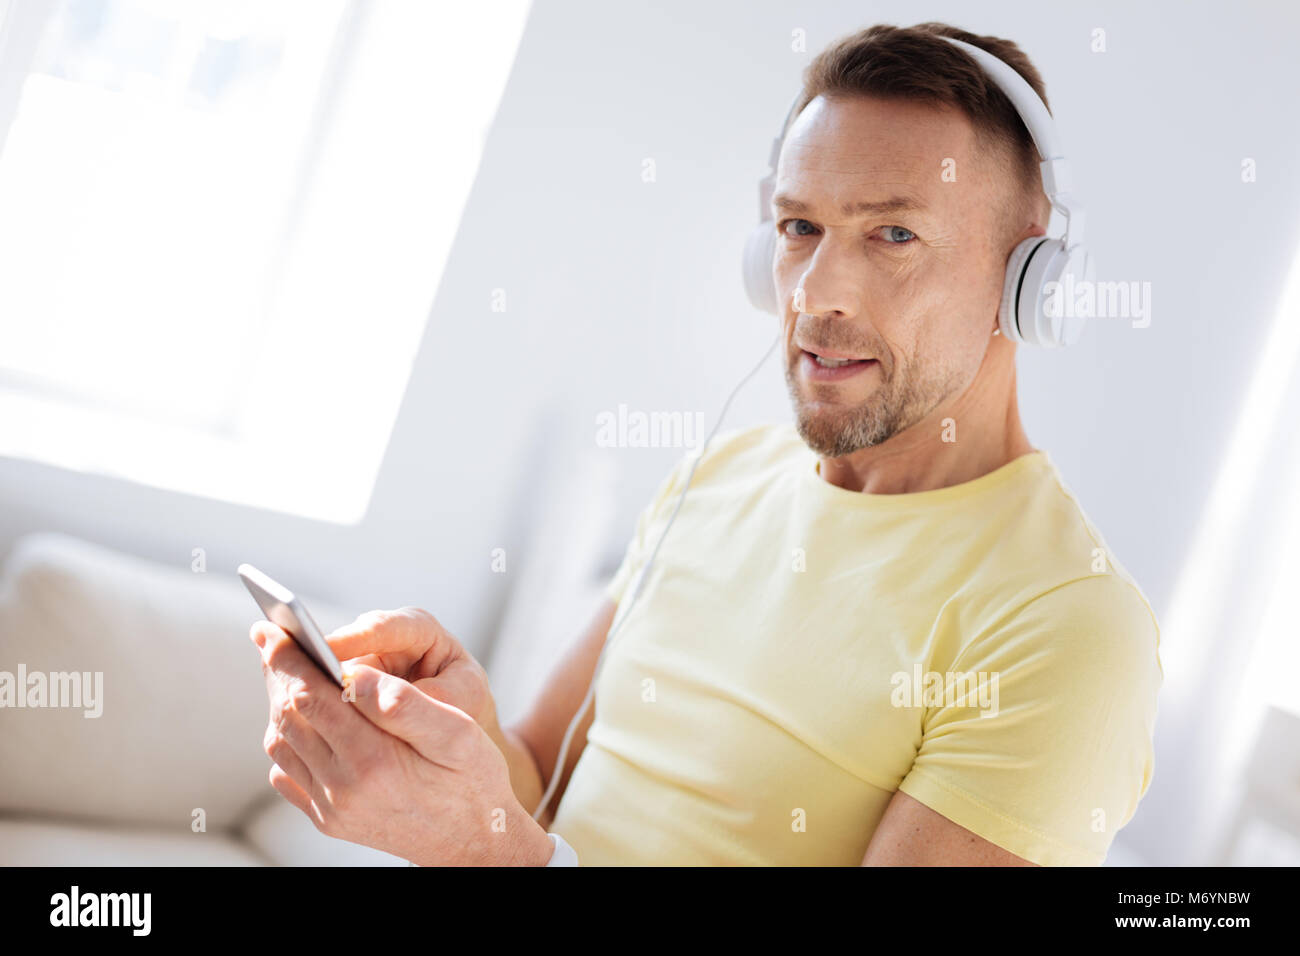 Inspired thoughtful man opting music - Stock Image